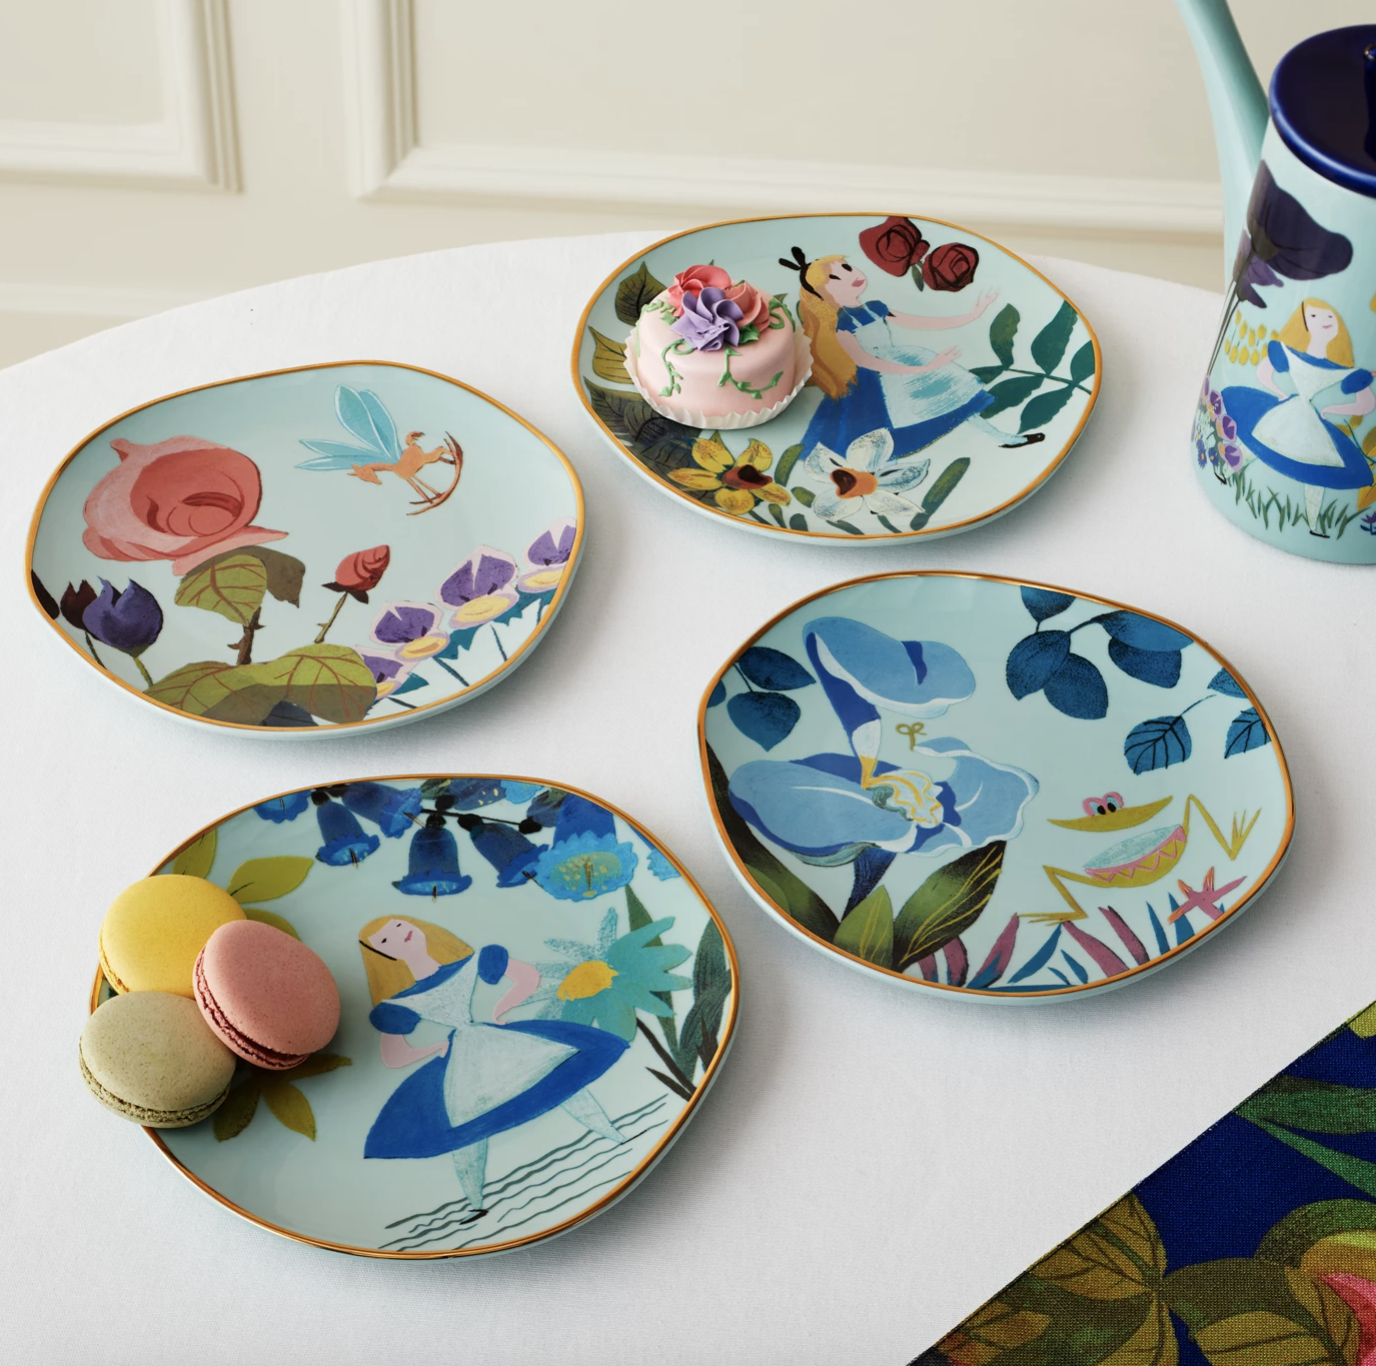 beautiful floral plates with scenes from alice in wonderland on them